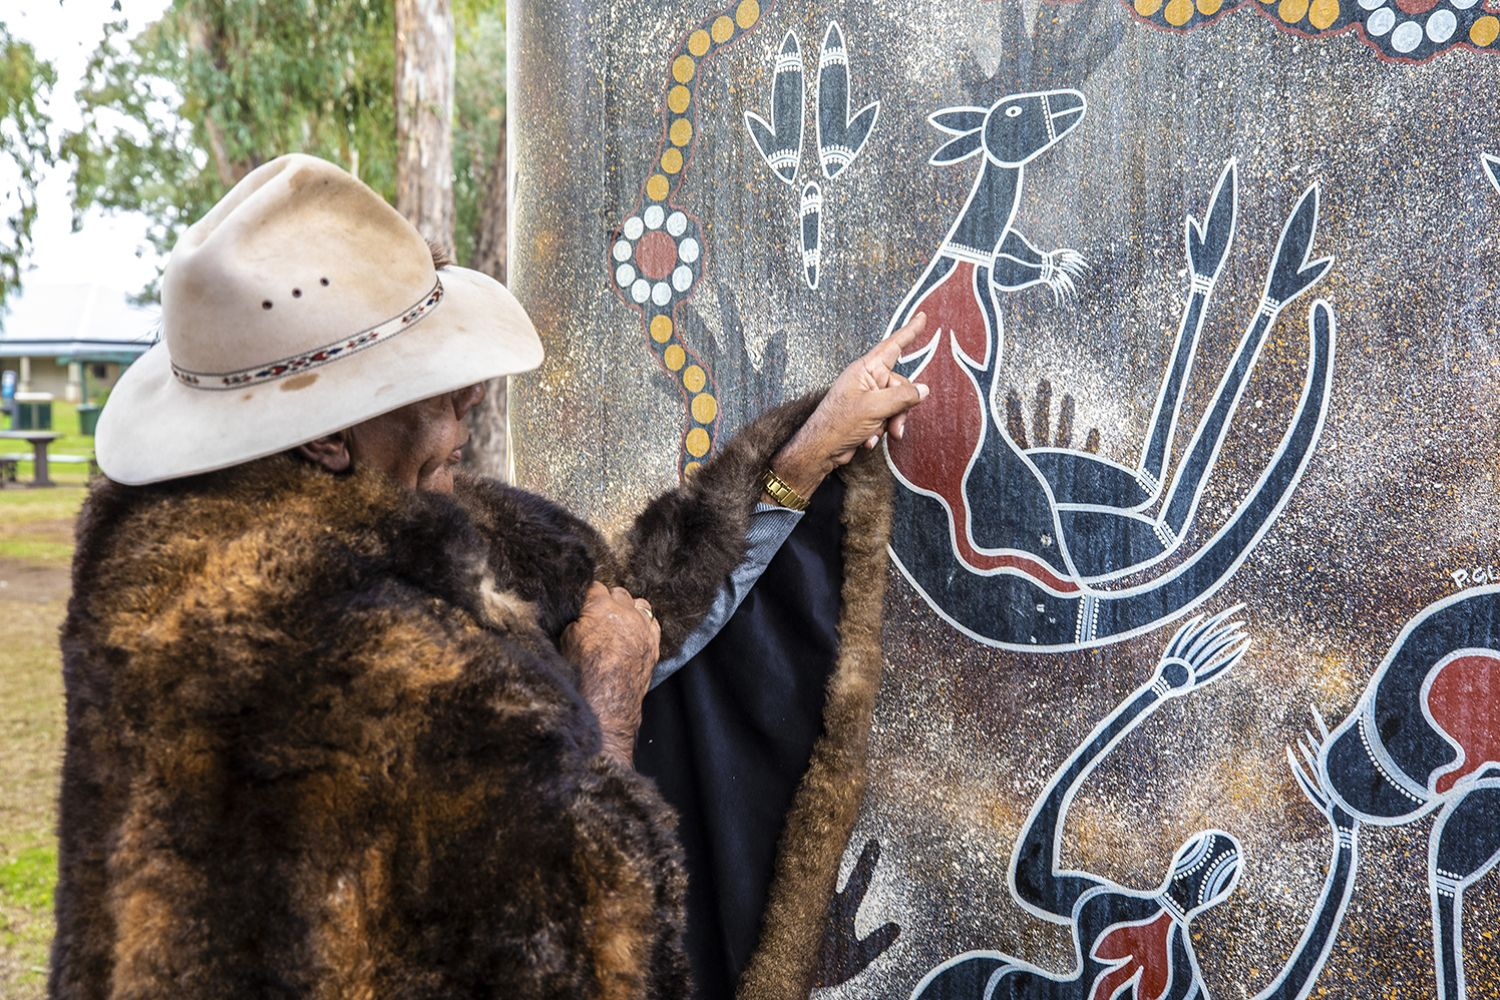 Peter Peckham of First Lesson Cultural Tours, Dubbo sharing his knowledge of Aboriginal art